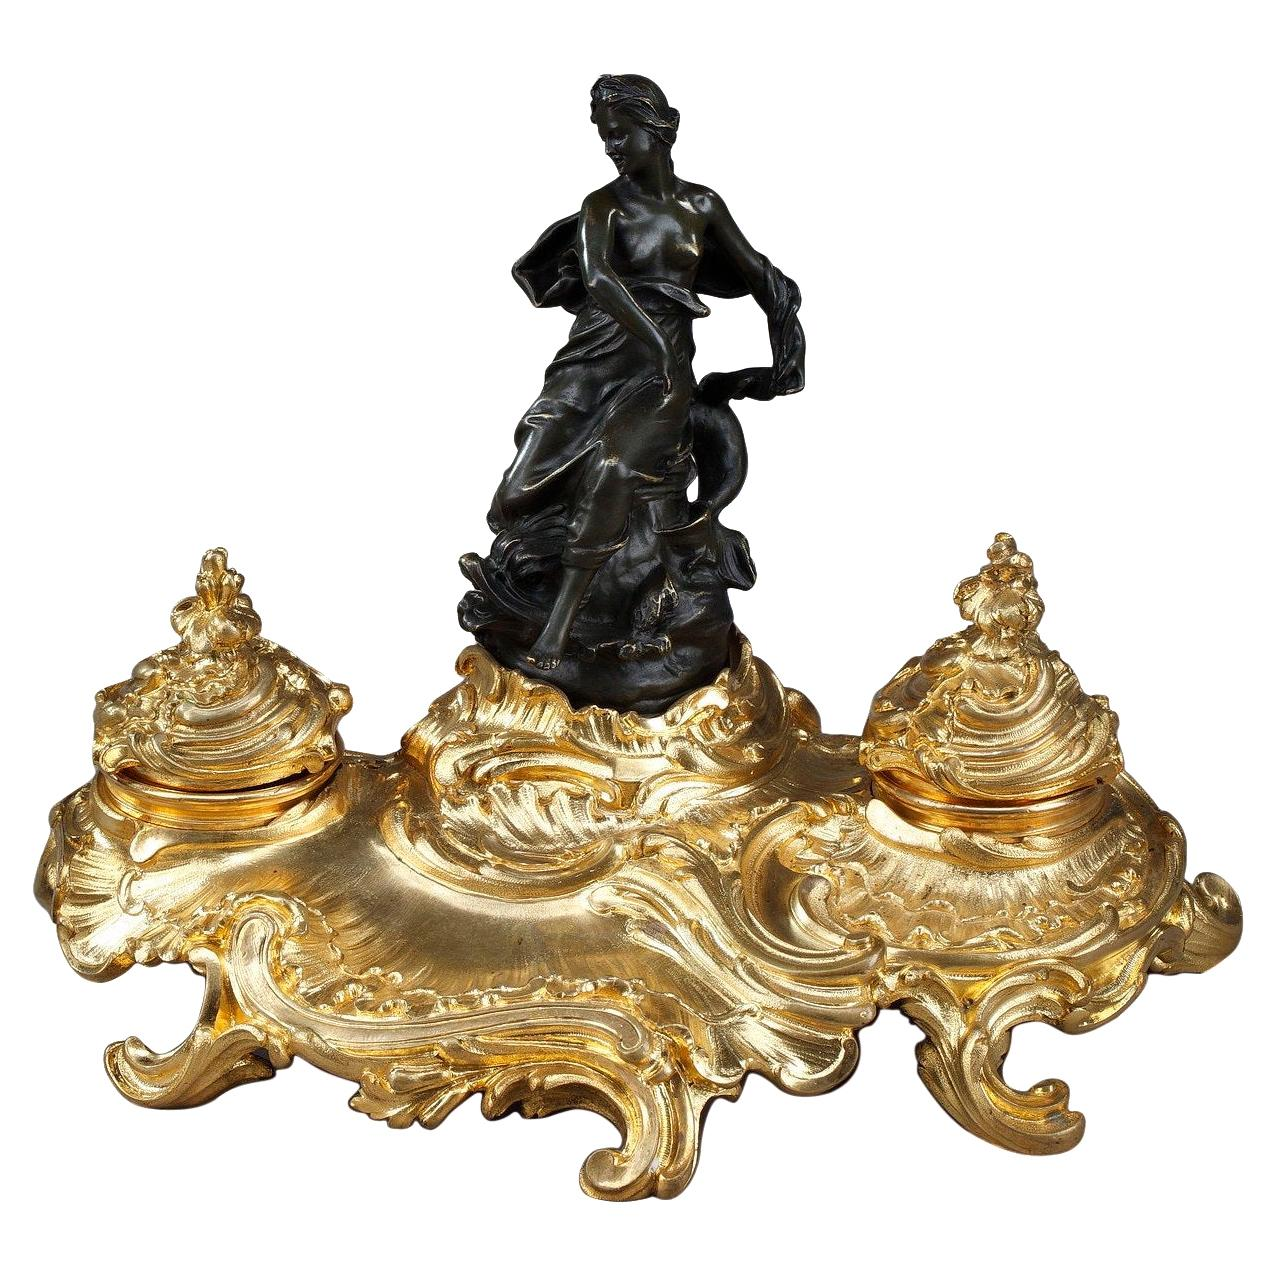 Bronze Inkwell with a Goddess in the Antique Style